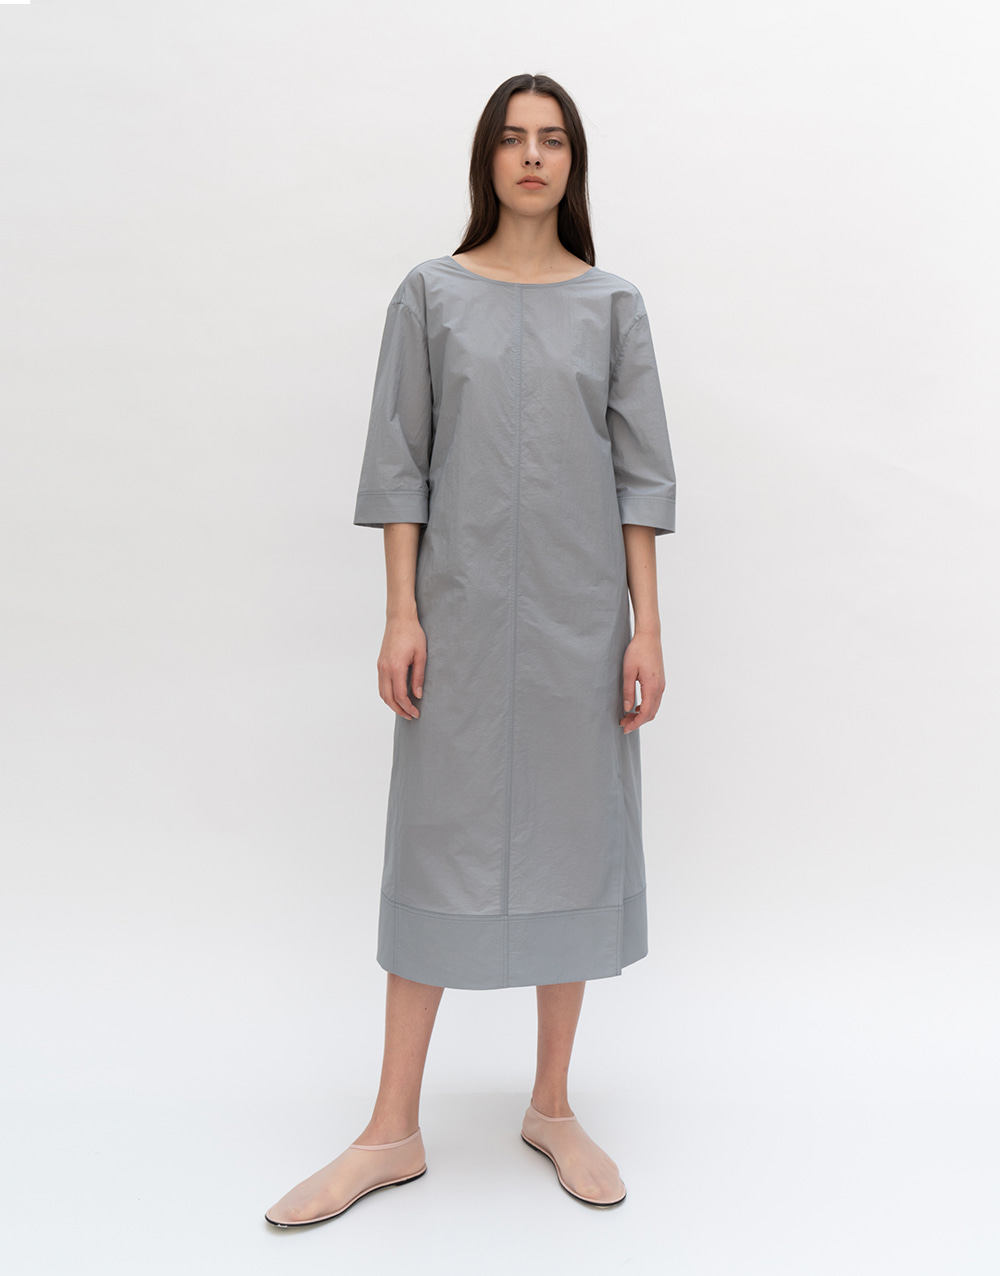 GBH APPAREL ADULT  Summer Backless Dress  GRAY